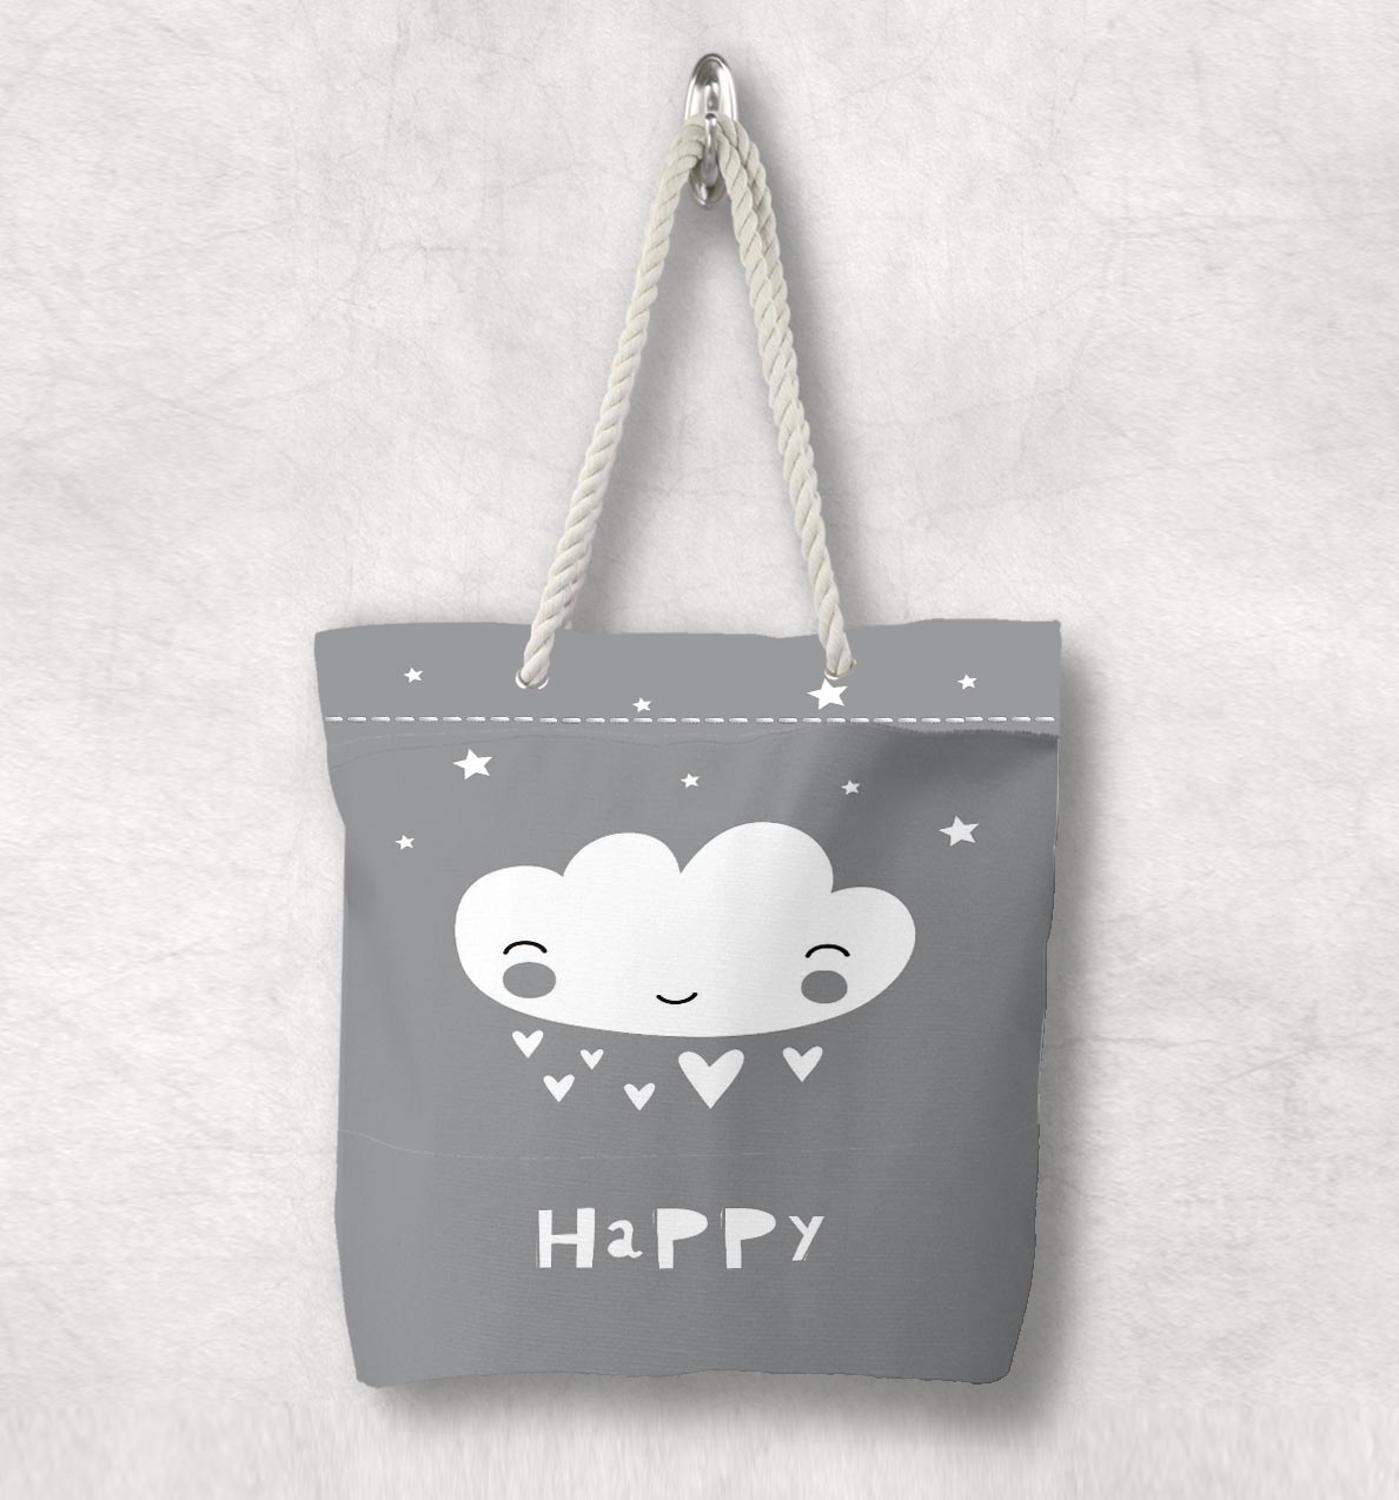 Else Gray White Happy Cloud Stars Nordic Scandinavian White Rope Handle Canvas Bag  Cartoon Print Zippered Tote Bag Shoulder Bag